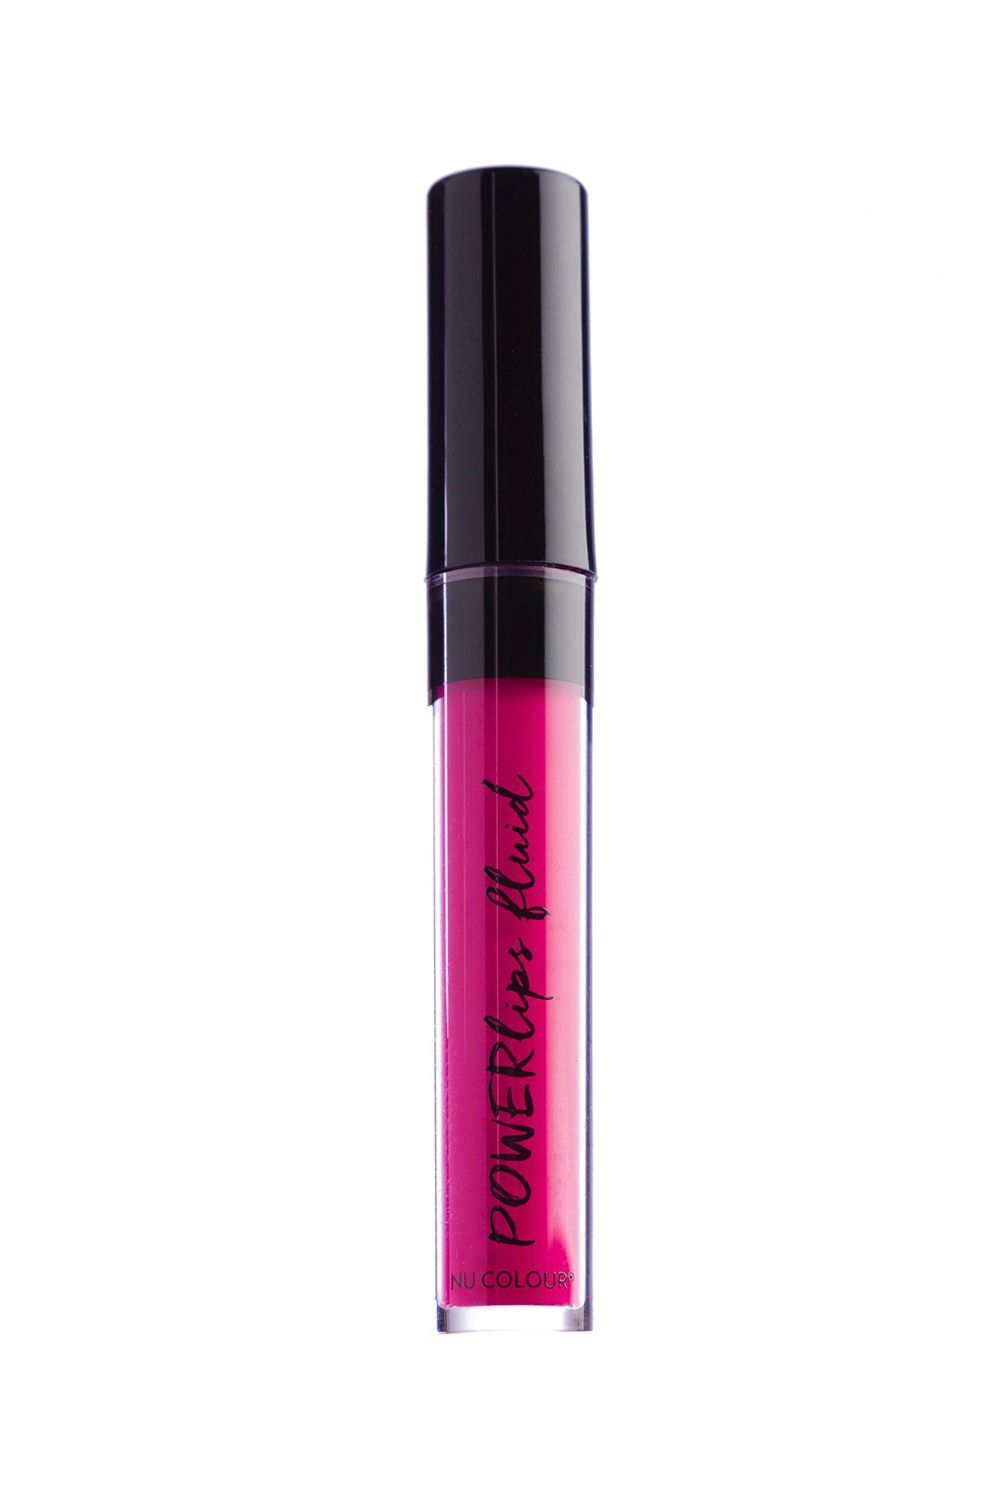 Bright Pink Nu Skin Powerlips Fluid in Bravery, $25 SHOP IT Shocking pink lips are a telltale sign that heavily pigmented lipsticks are on their way in this spring—plan accordingly. This comfortable formula rests on your lips like a cushion, and stays put for hours—no bleeding or feathering is involved.